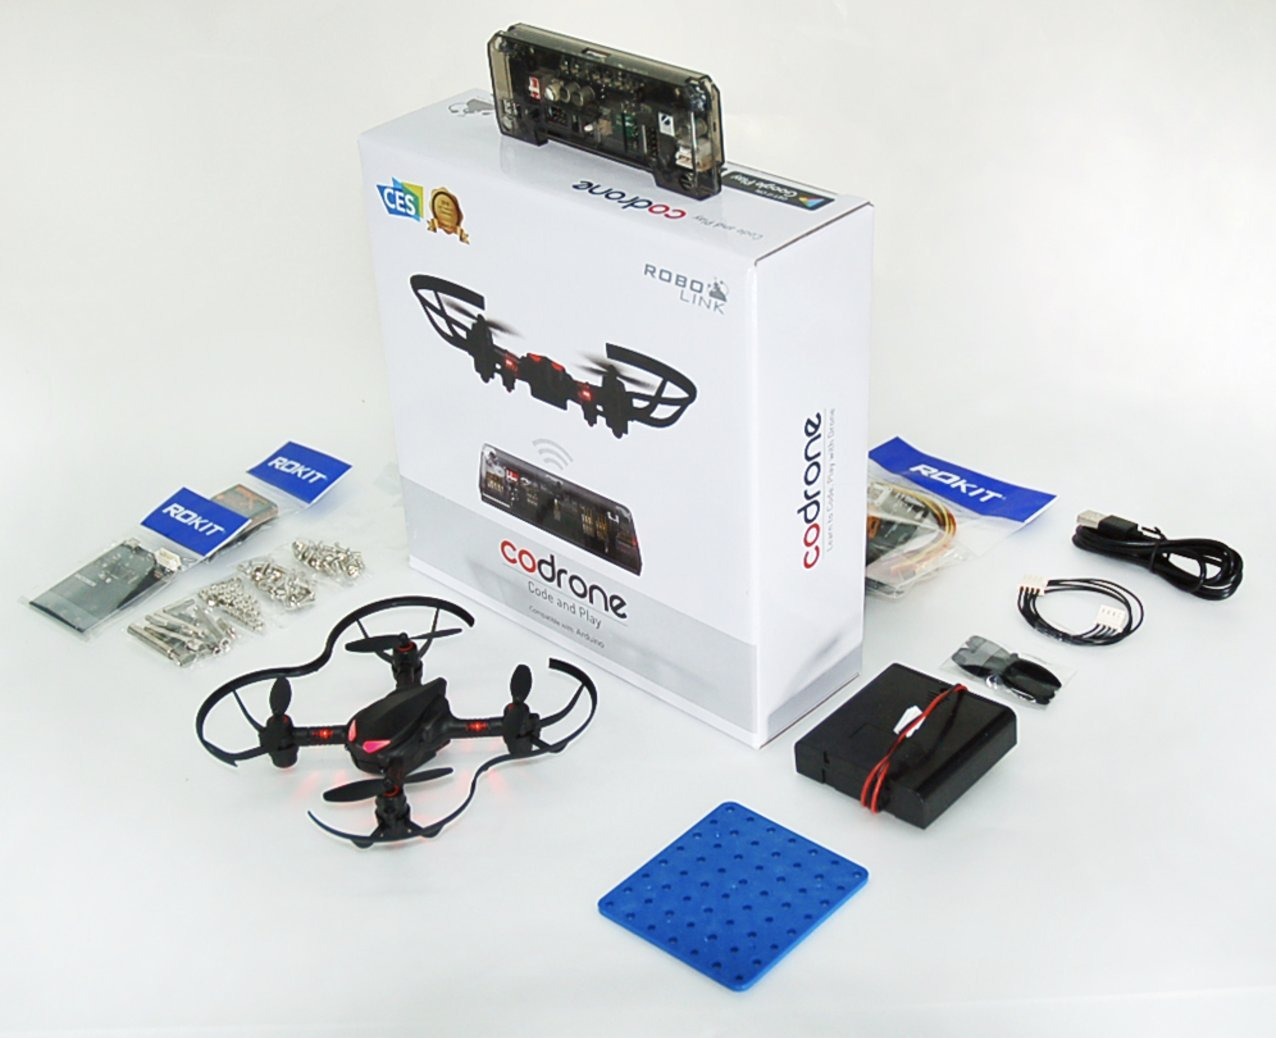 World's First Programmable Drone 10